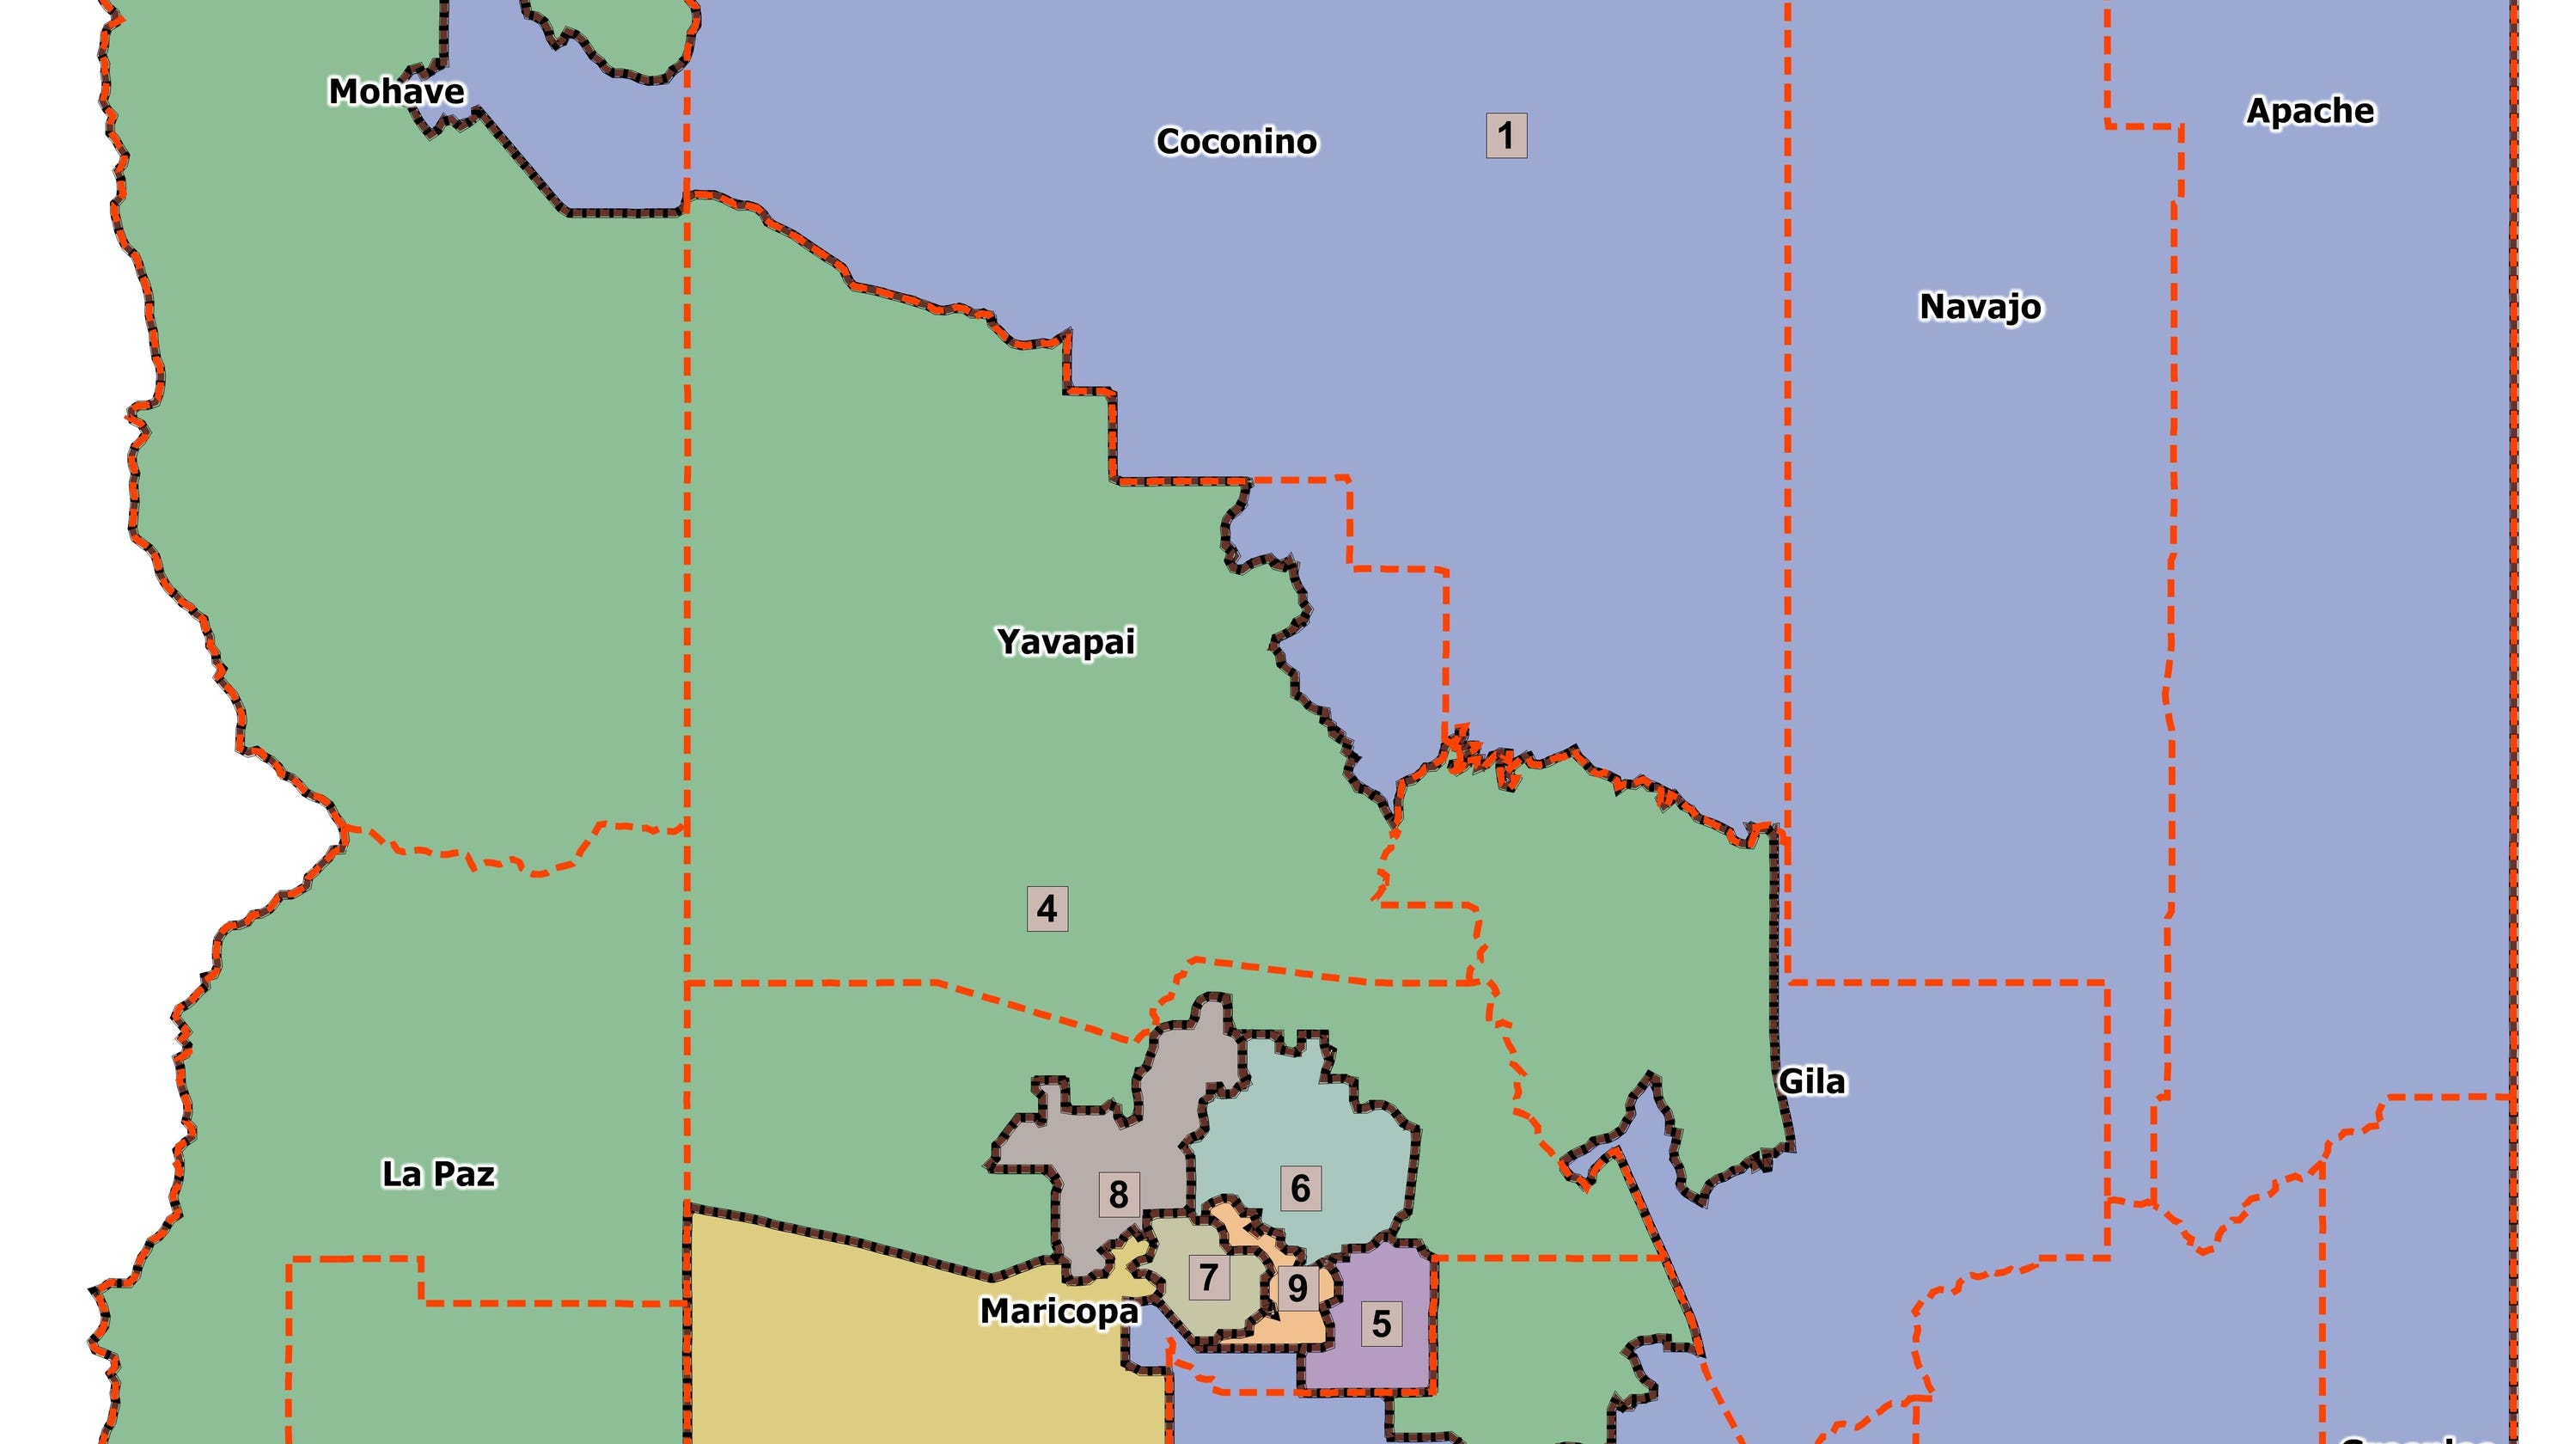 Arizona congressional district map: What district am I in?